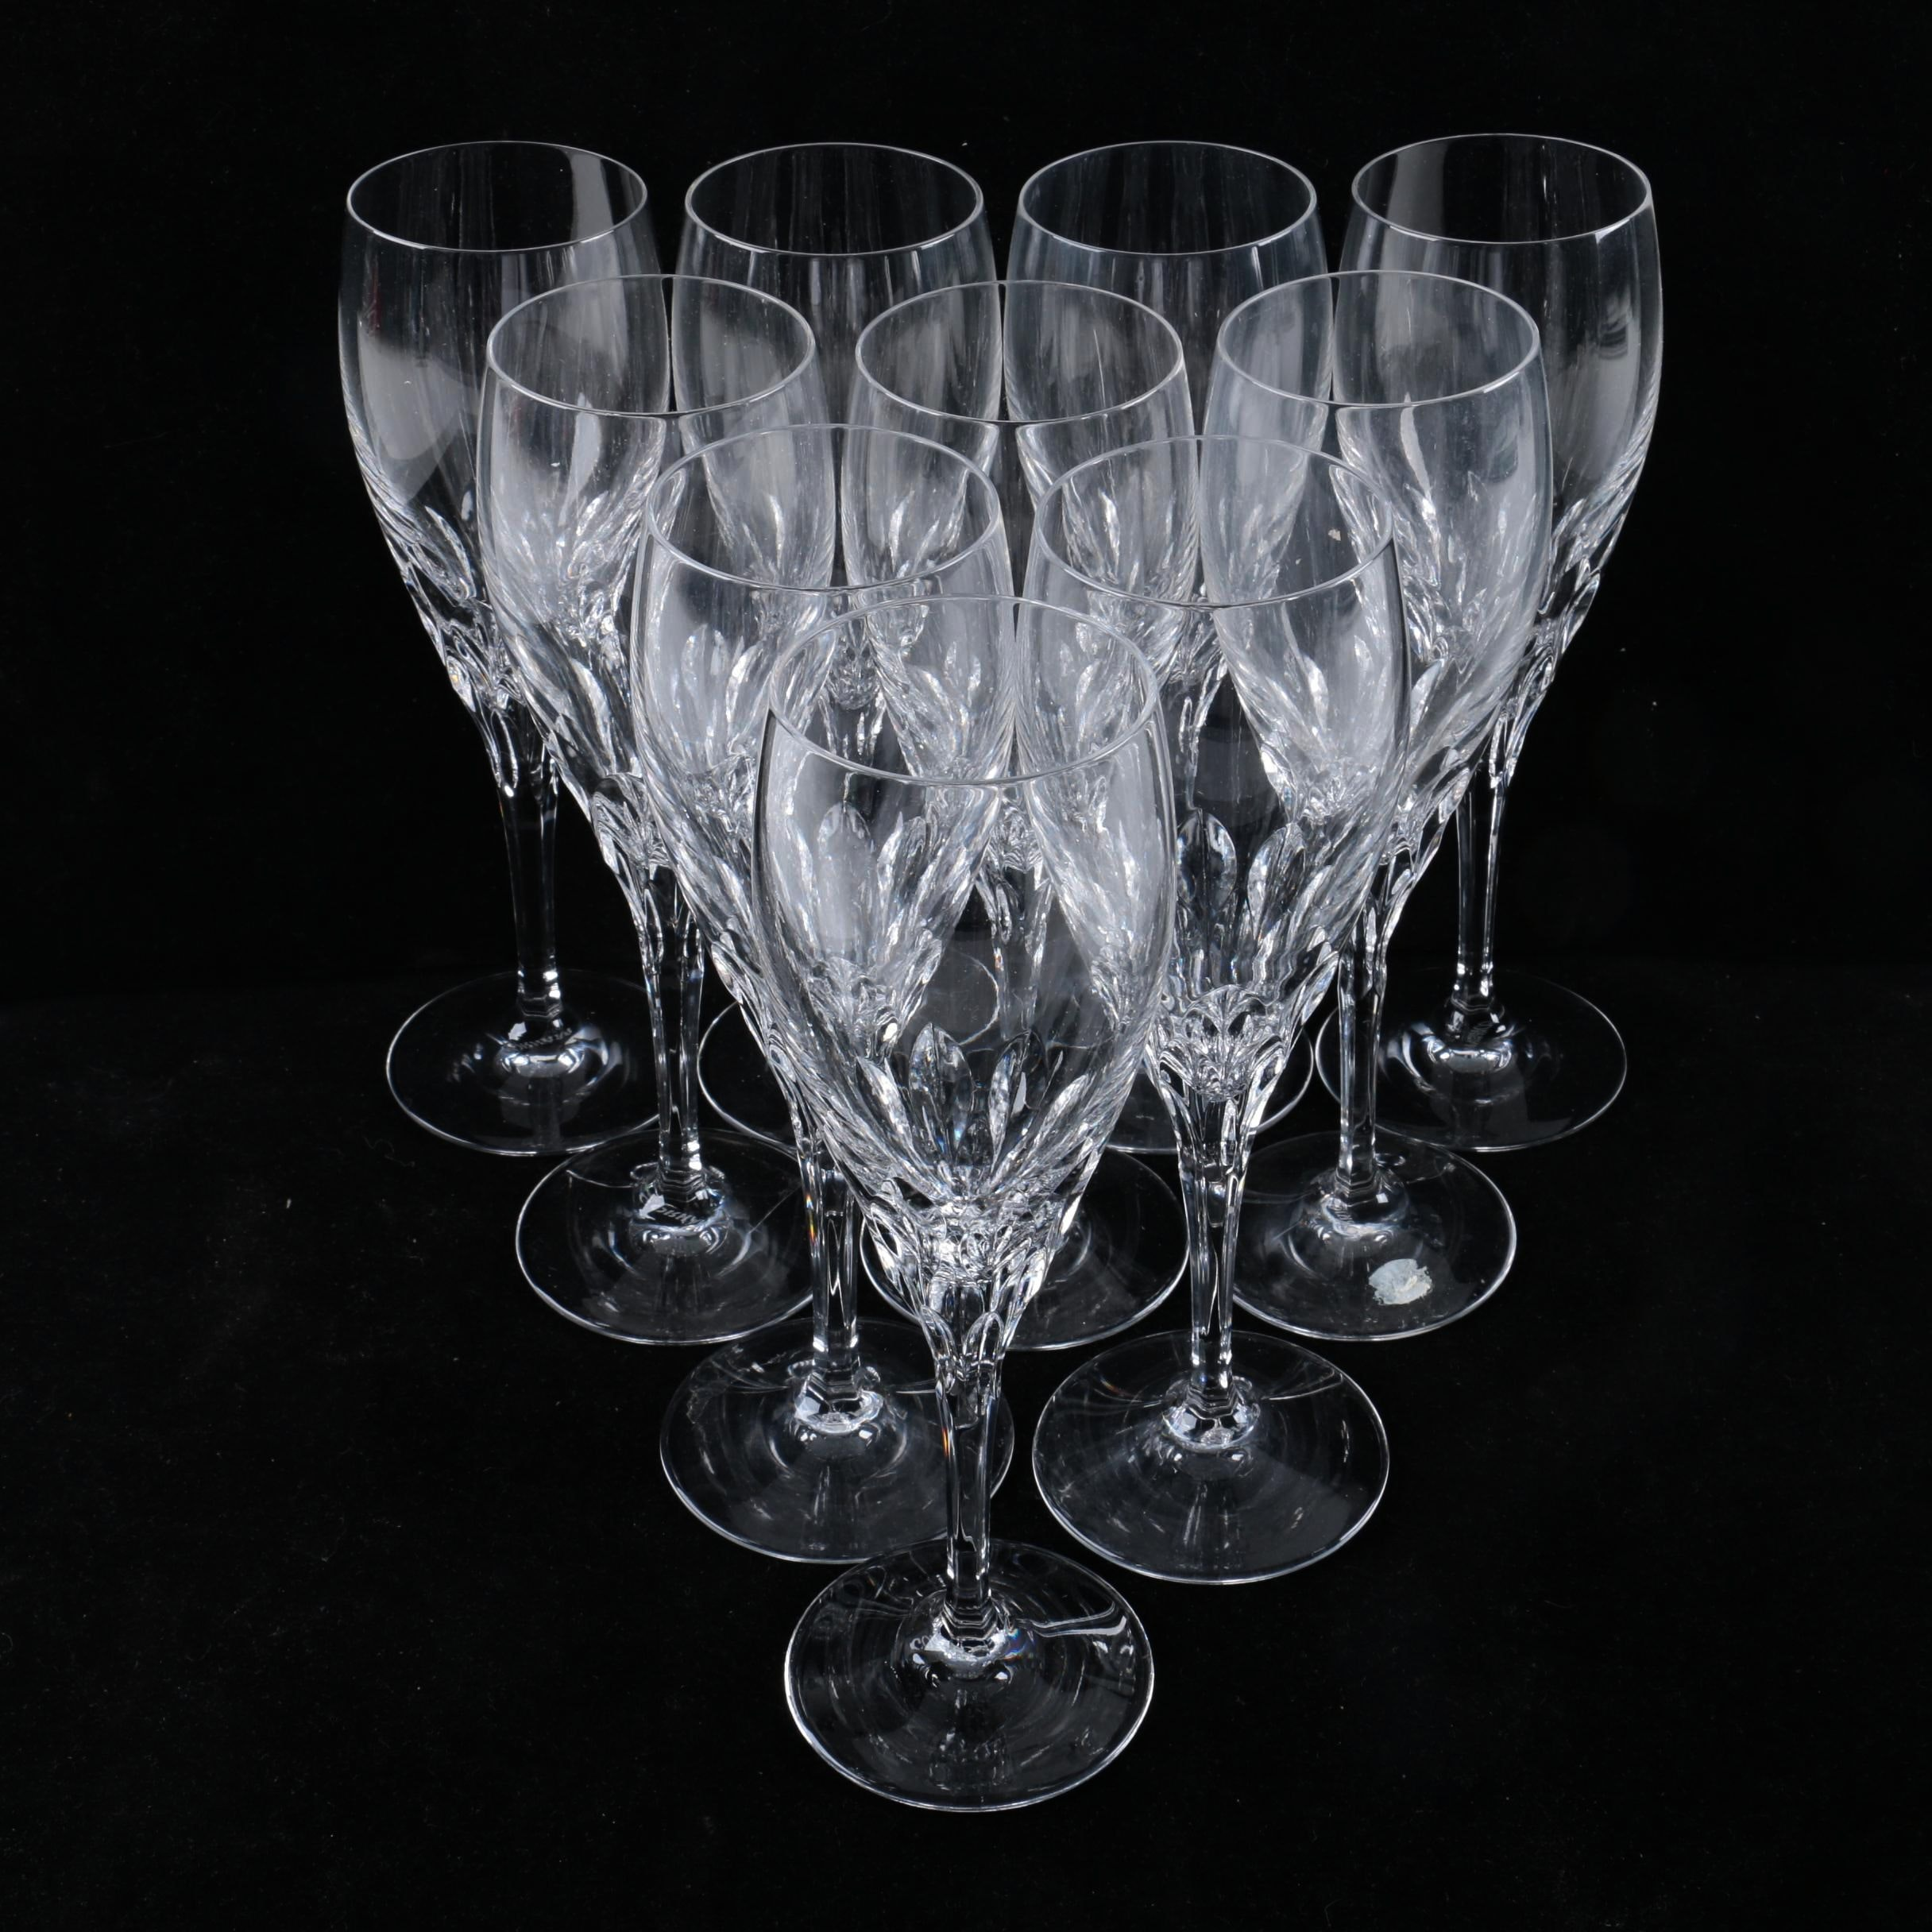 Collection of Ten Gorham Crystal Champagne Flutes